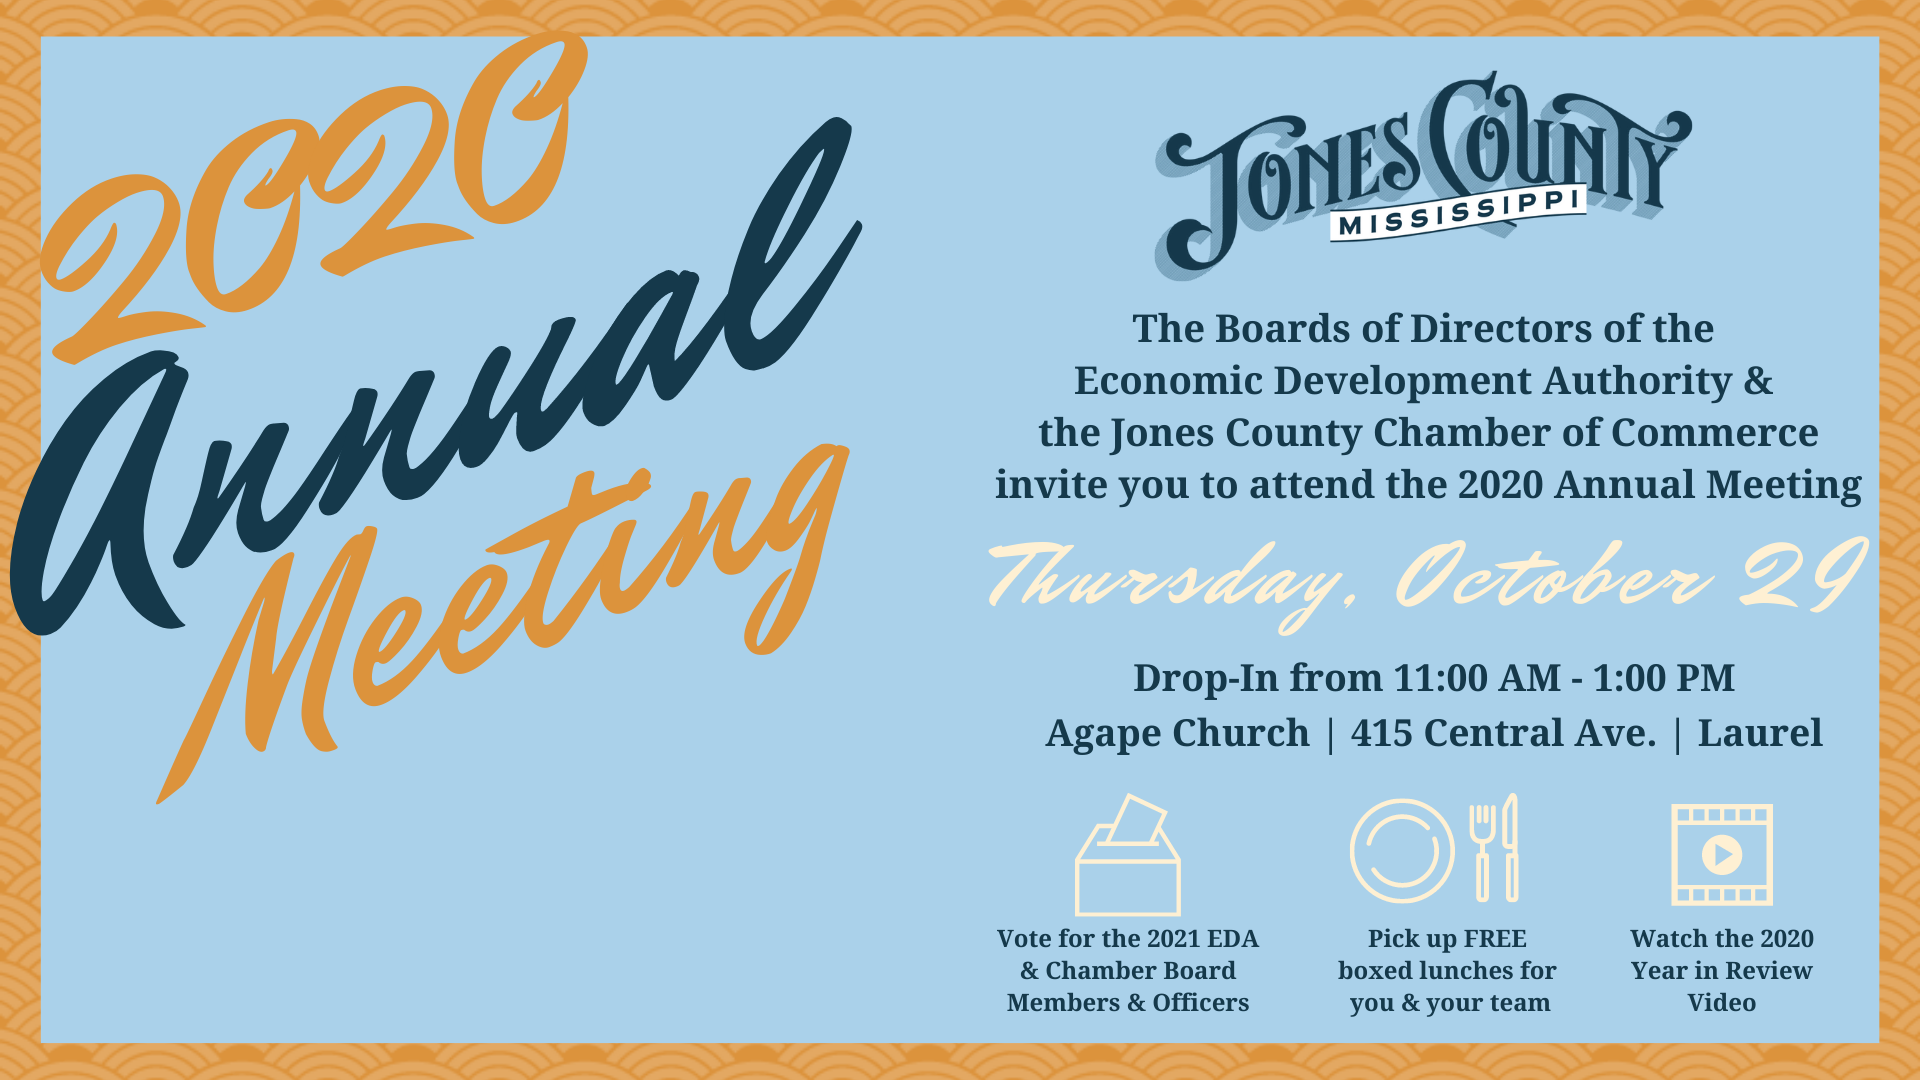 The City of Laurel, EDA of Jones County & Jones County Chamber of Commerce Annual Meeting